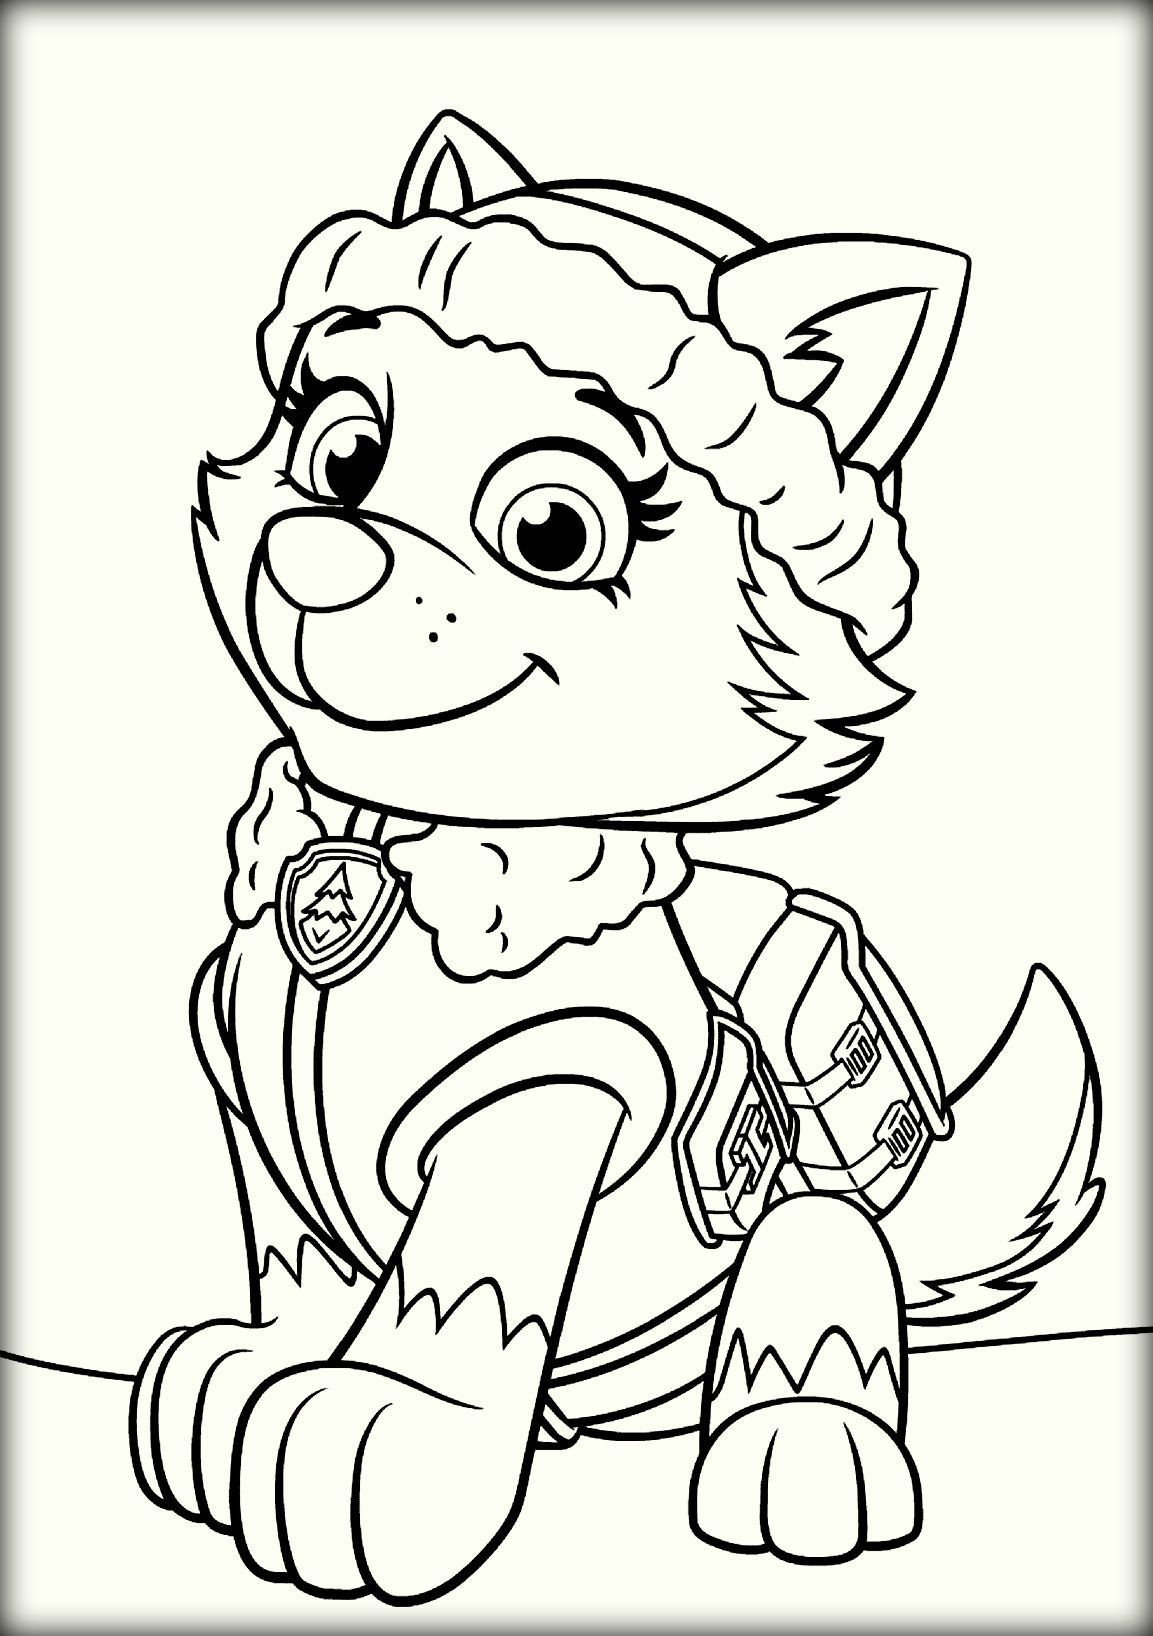 Paw Patrol Ausmalbild Einzigartig Inspirational Free Paw Patrol Coloring Pages Coloring Pages Stock